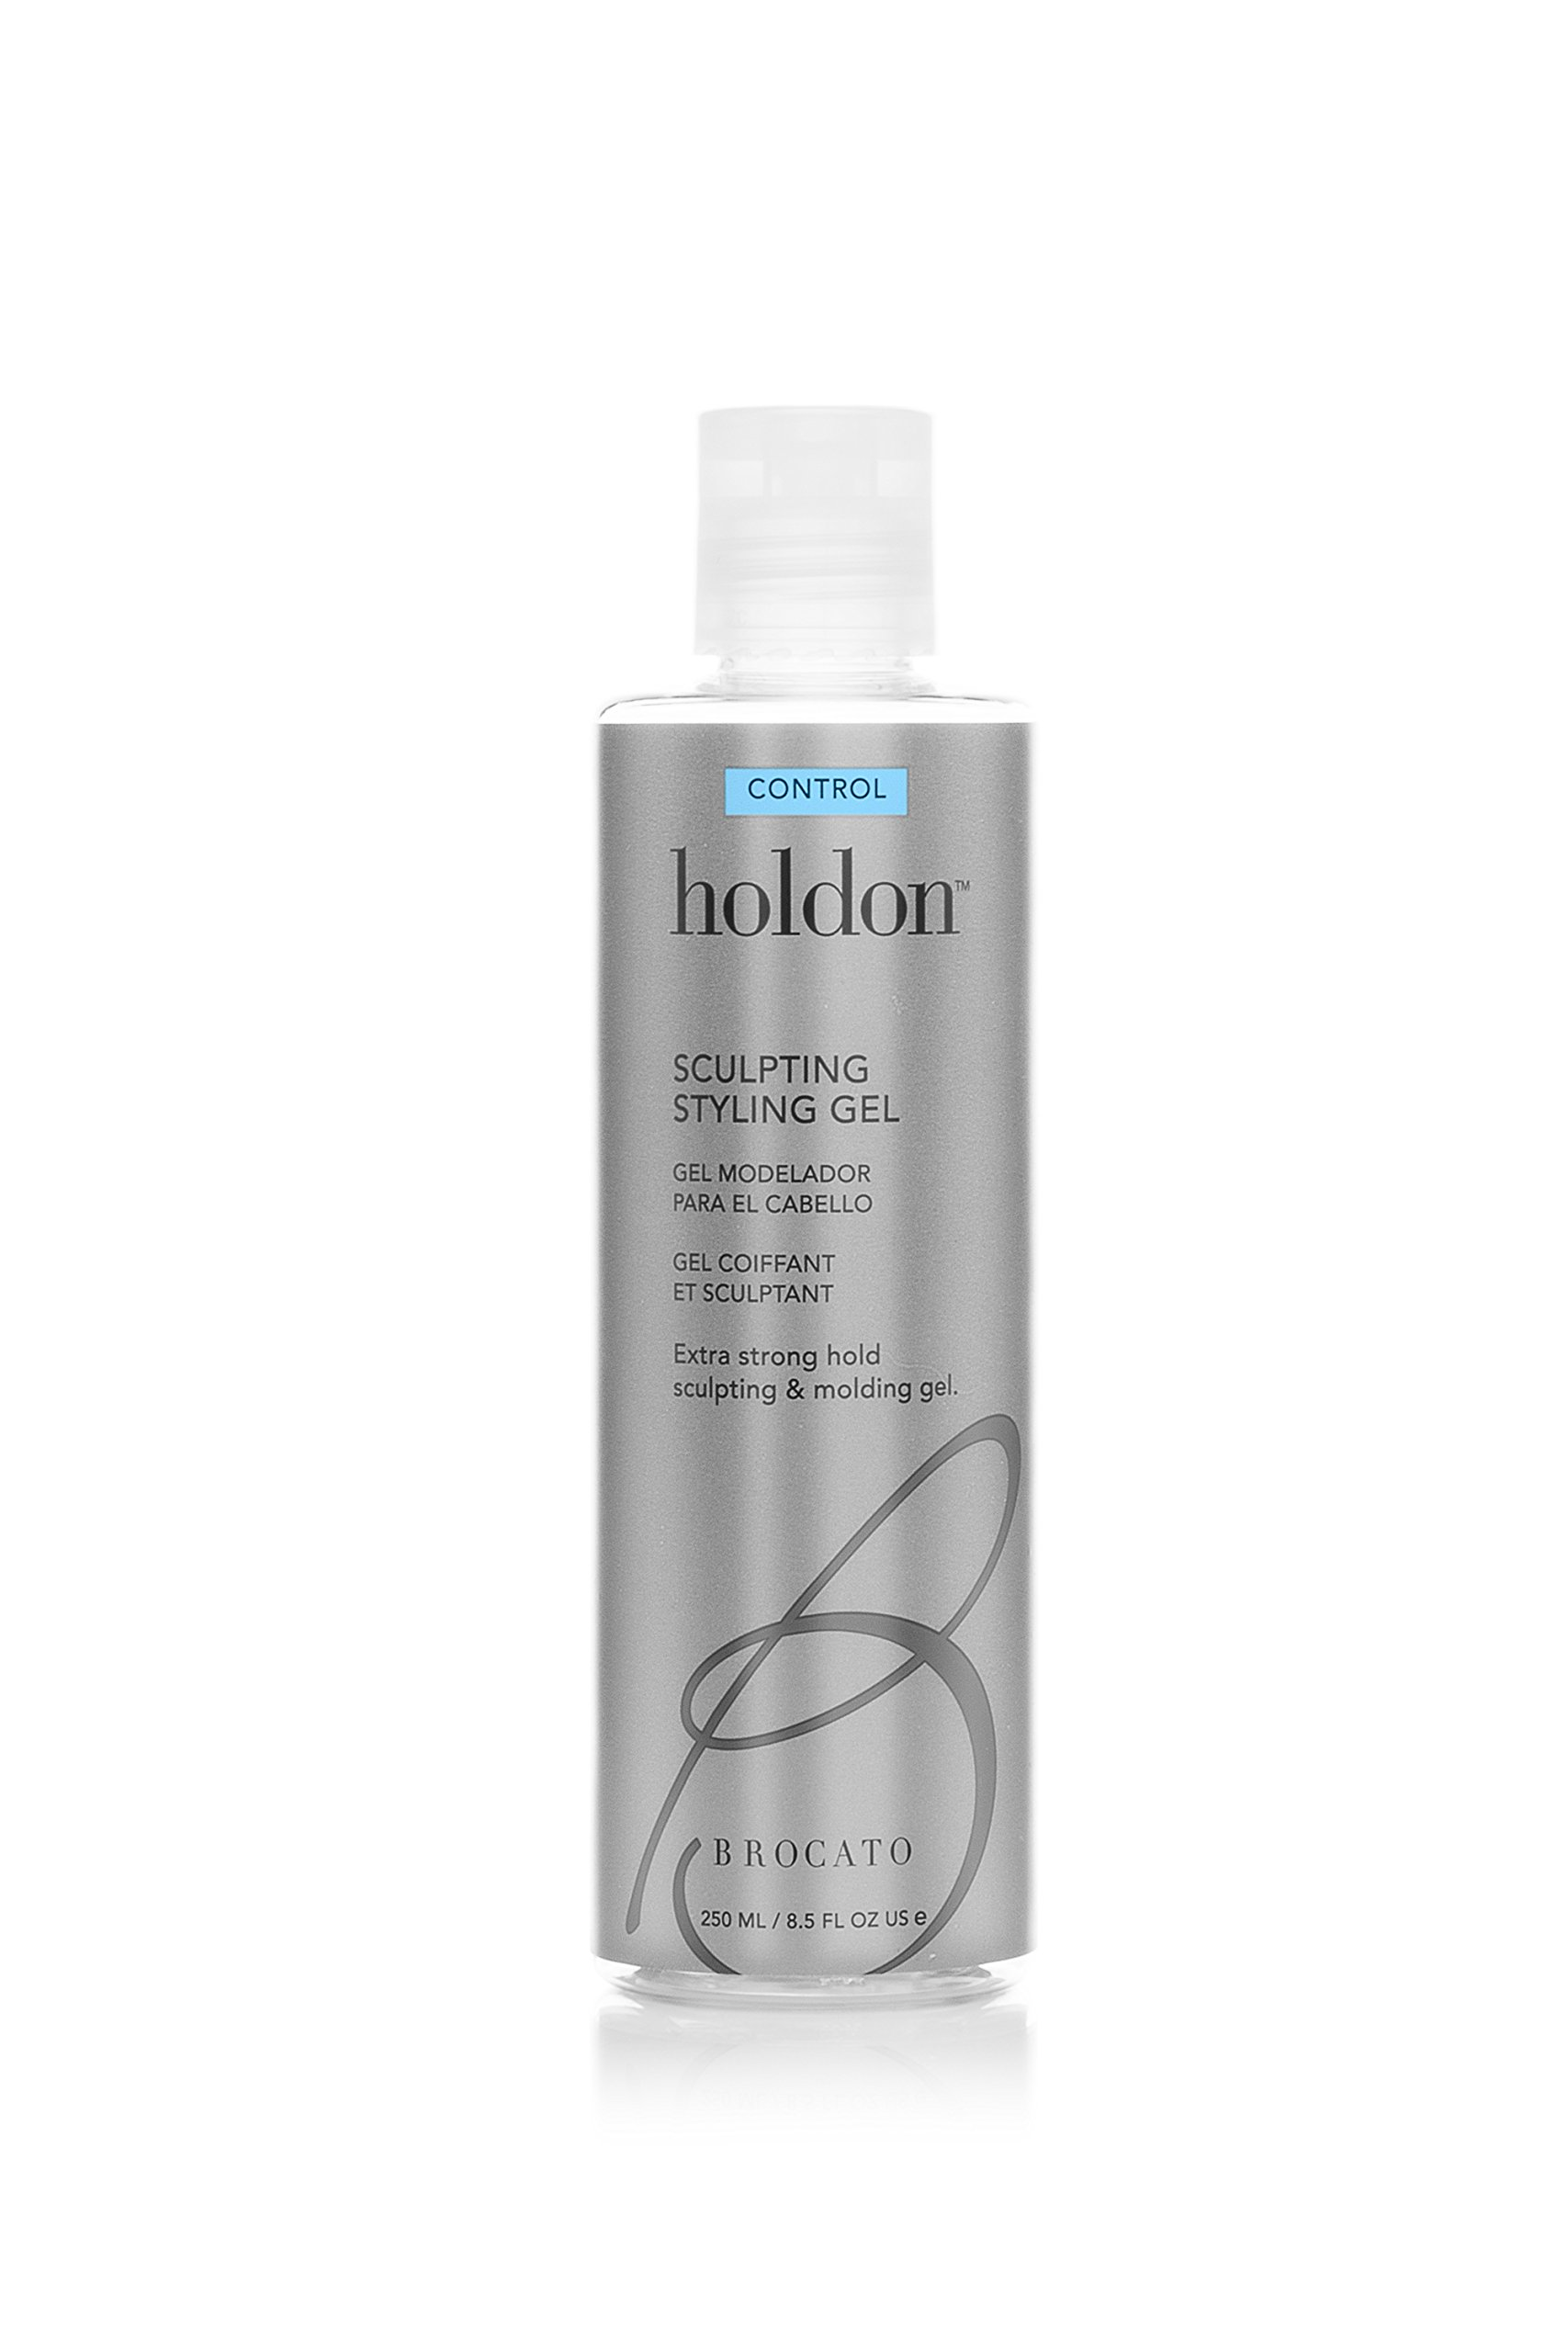 Brocato Holdon Sculpting Styling Gel: Firm Control & Strong Hold Hair Products for Men & Women - Volumizing Product for Molding, Shaping & Sculpting Hairstyles - Adds Shine & Manageability - 8.5 Oz